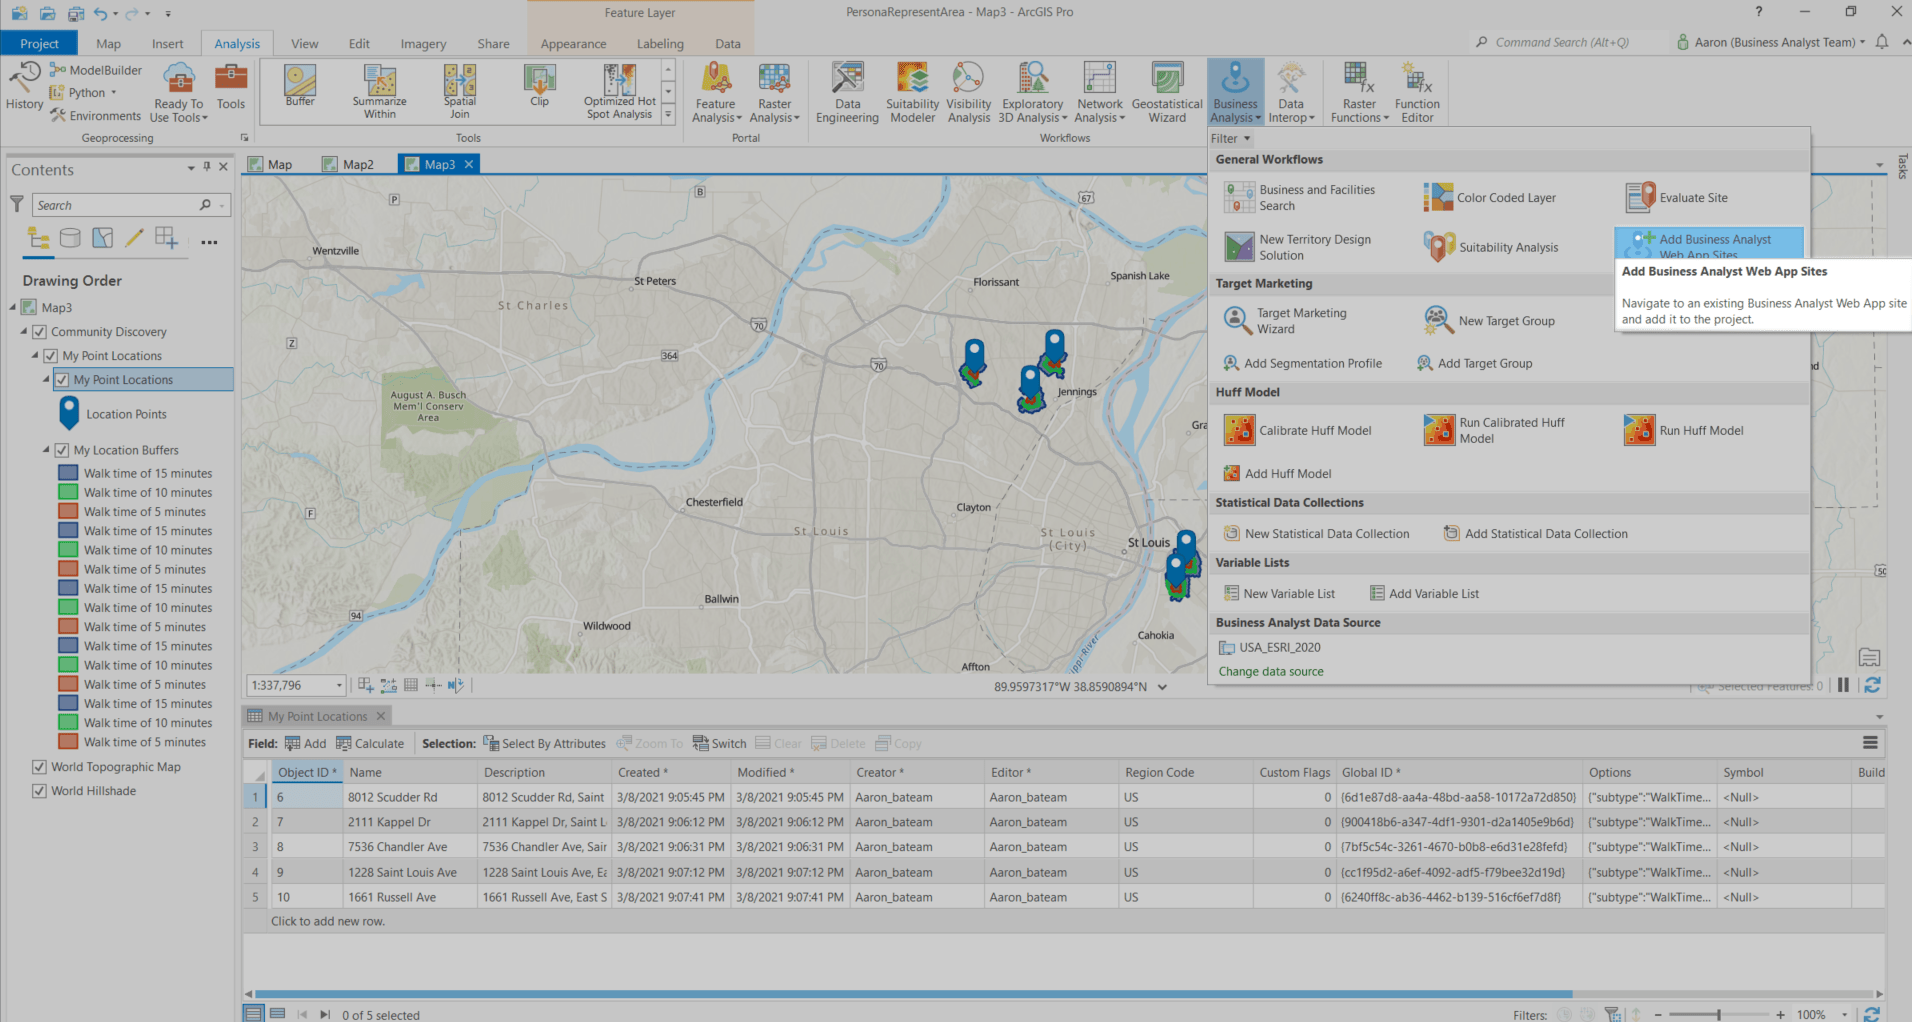 A new workflow for adding sites from ArcGIS Business Analyst Web App to ArcGIS Pro.